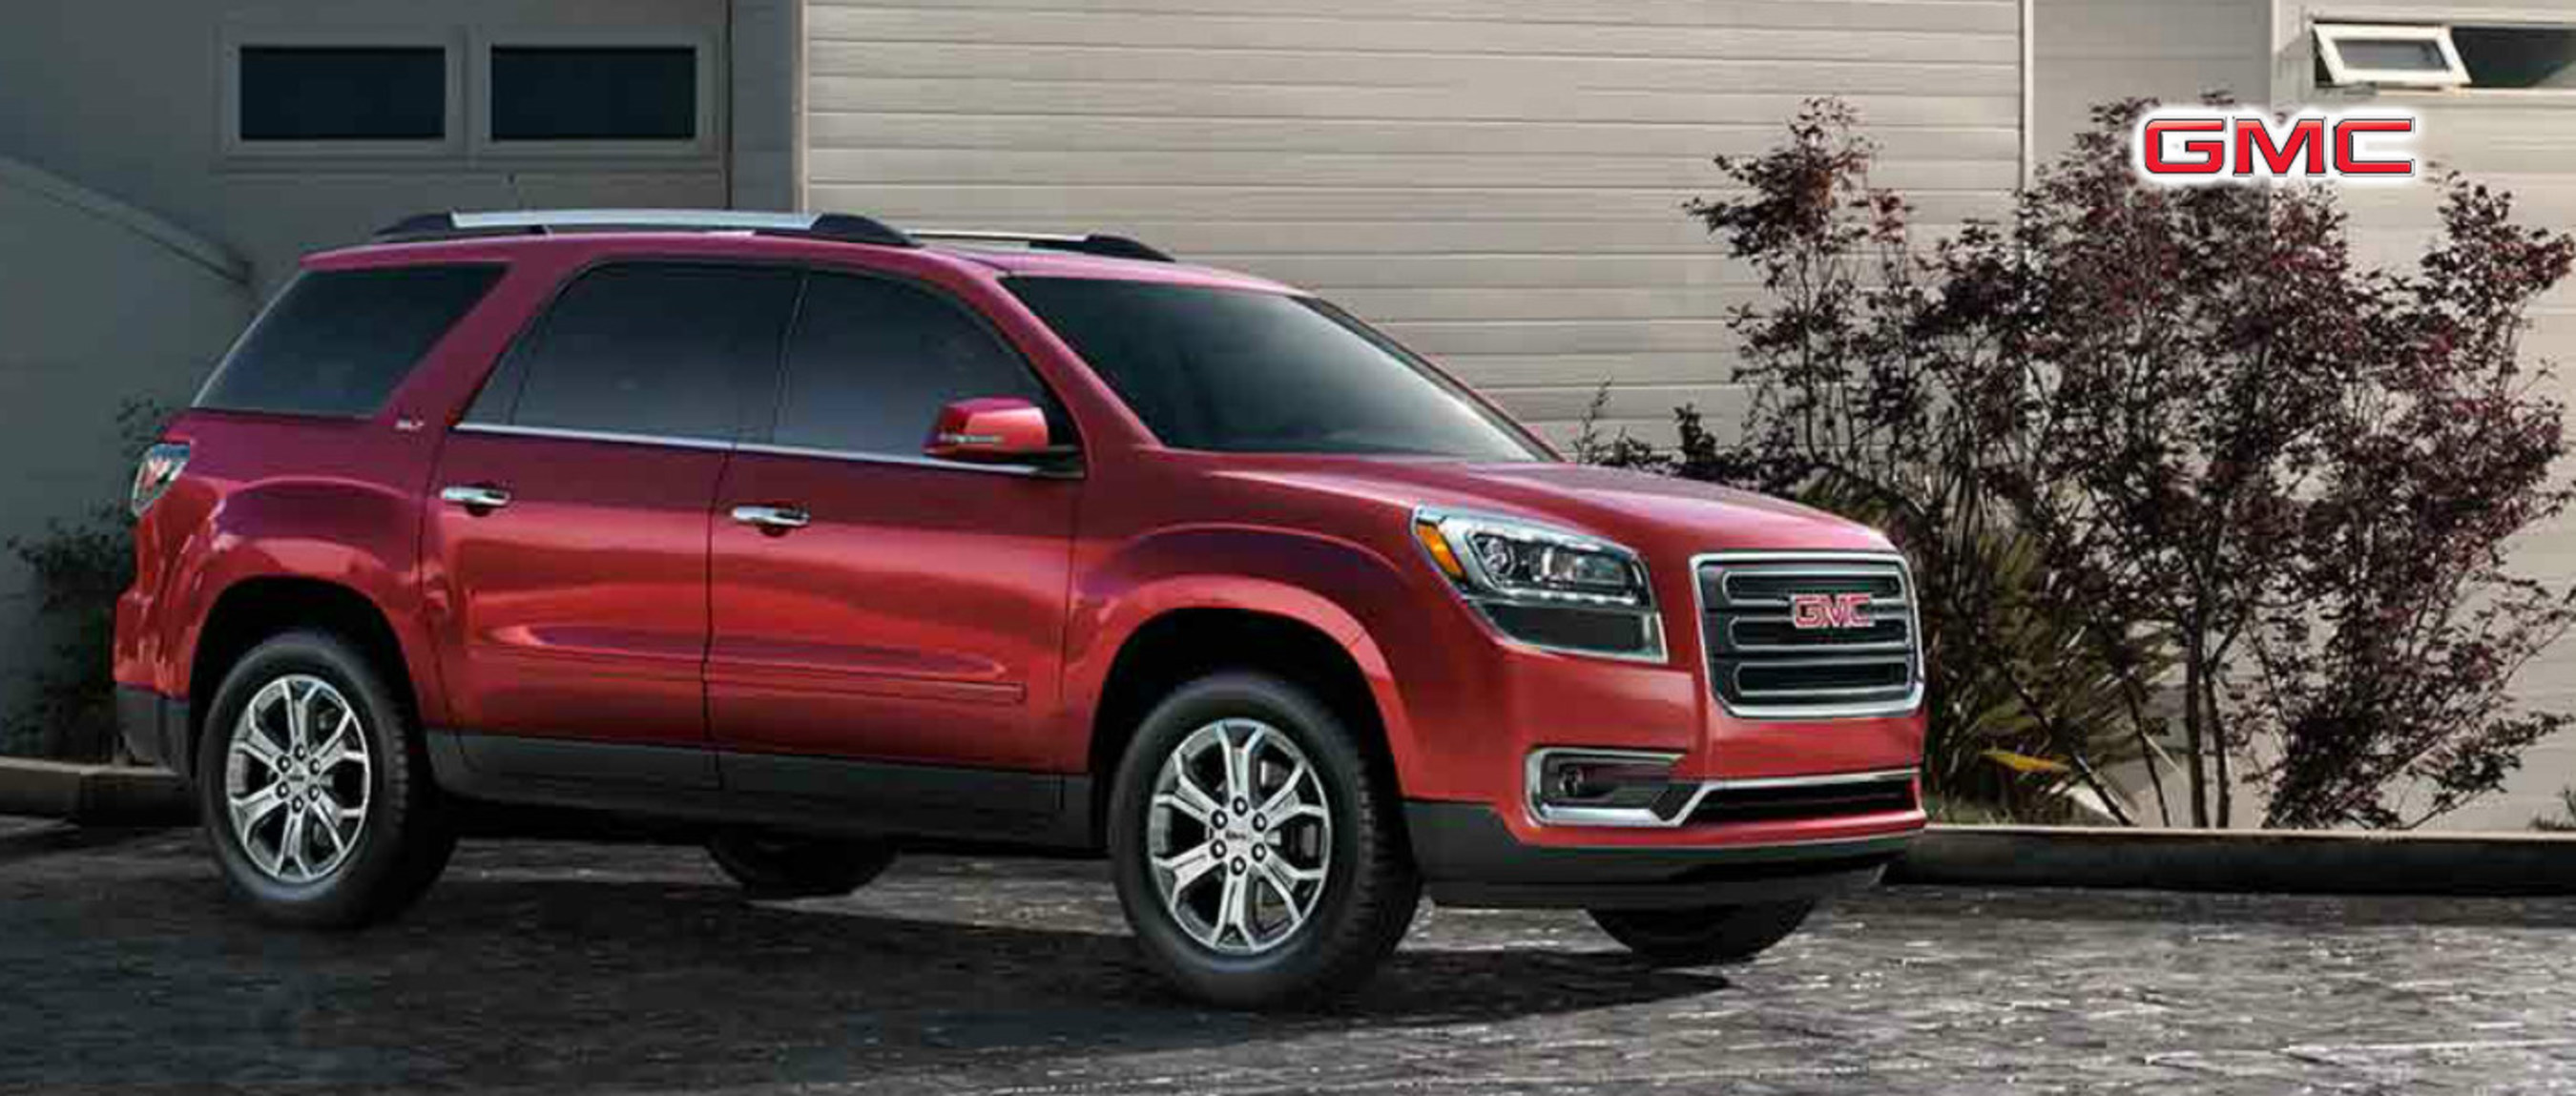 Premium SUV inventory at Don Wheat covers all sizes